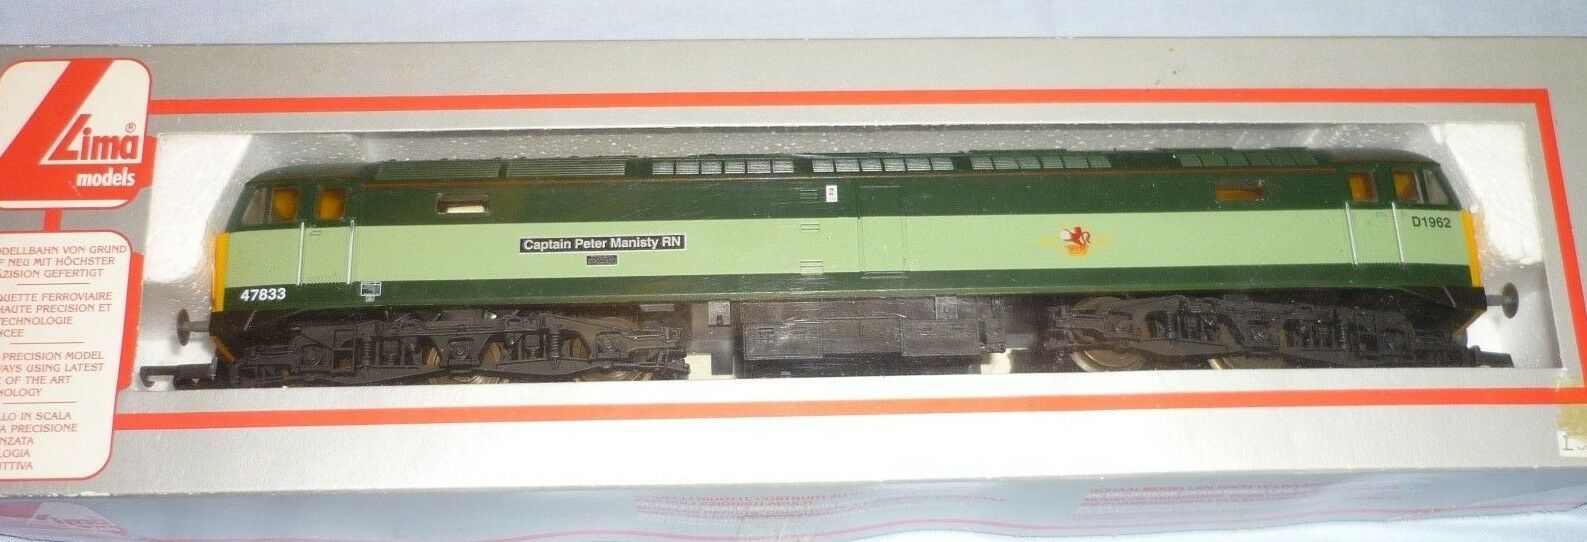 LIMA OO GAUGE BR classe 47  DIESEL CoCo LOCO 47833D1962 L205089 scatolaED LIMIT EDt